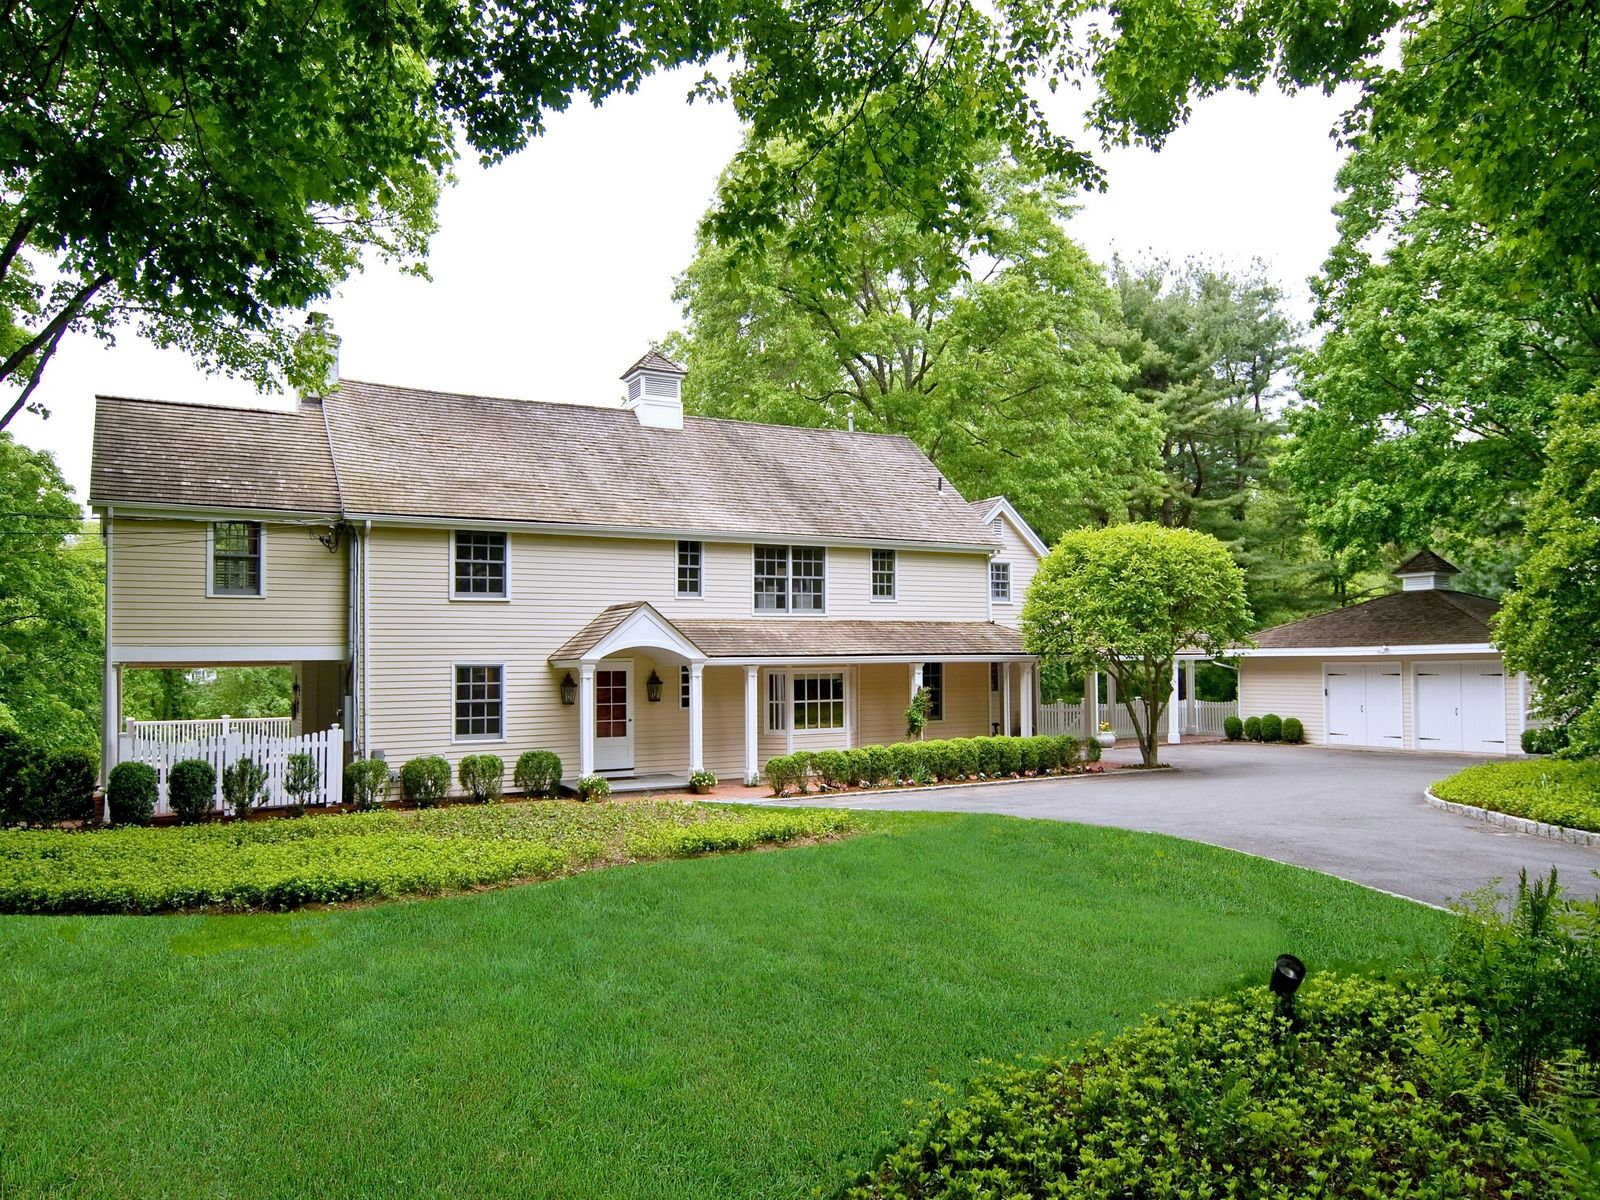 Clapboard Ridge, Greenwich CT Single Family Home - Greenwich Real Estate